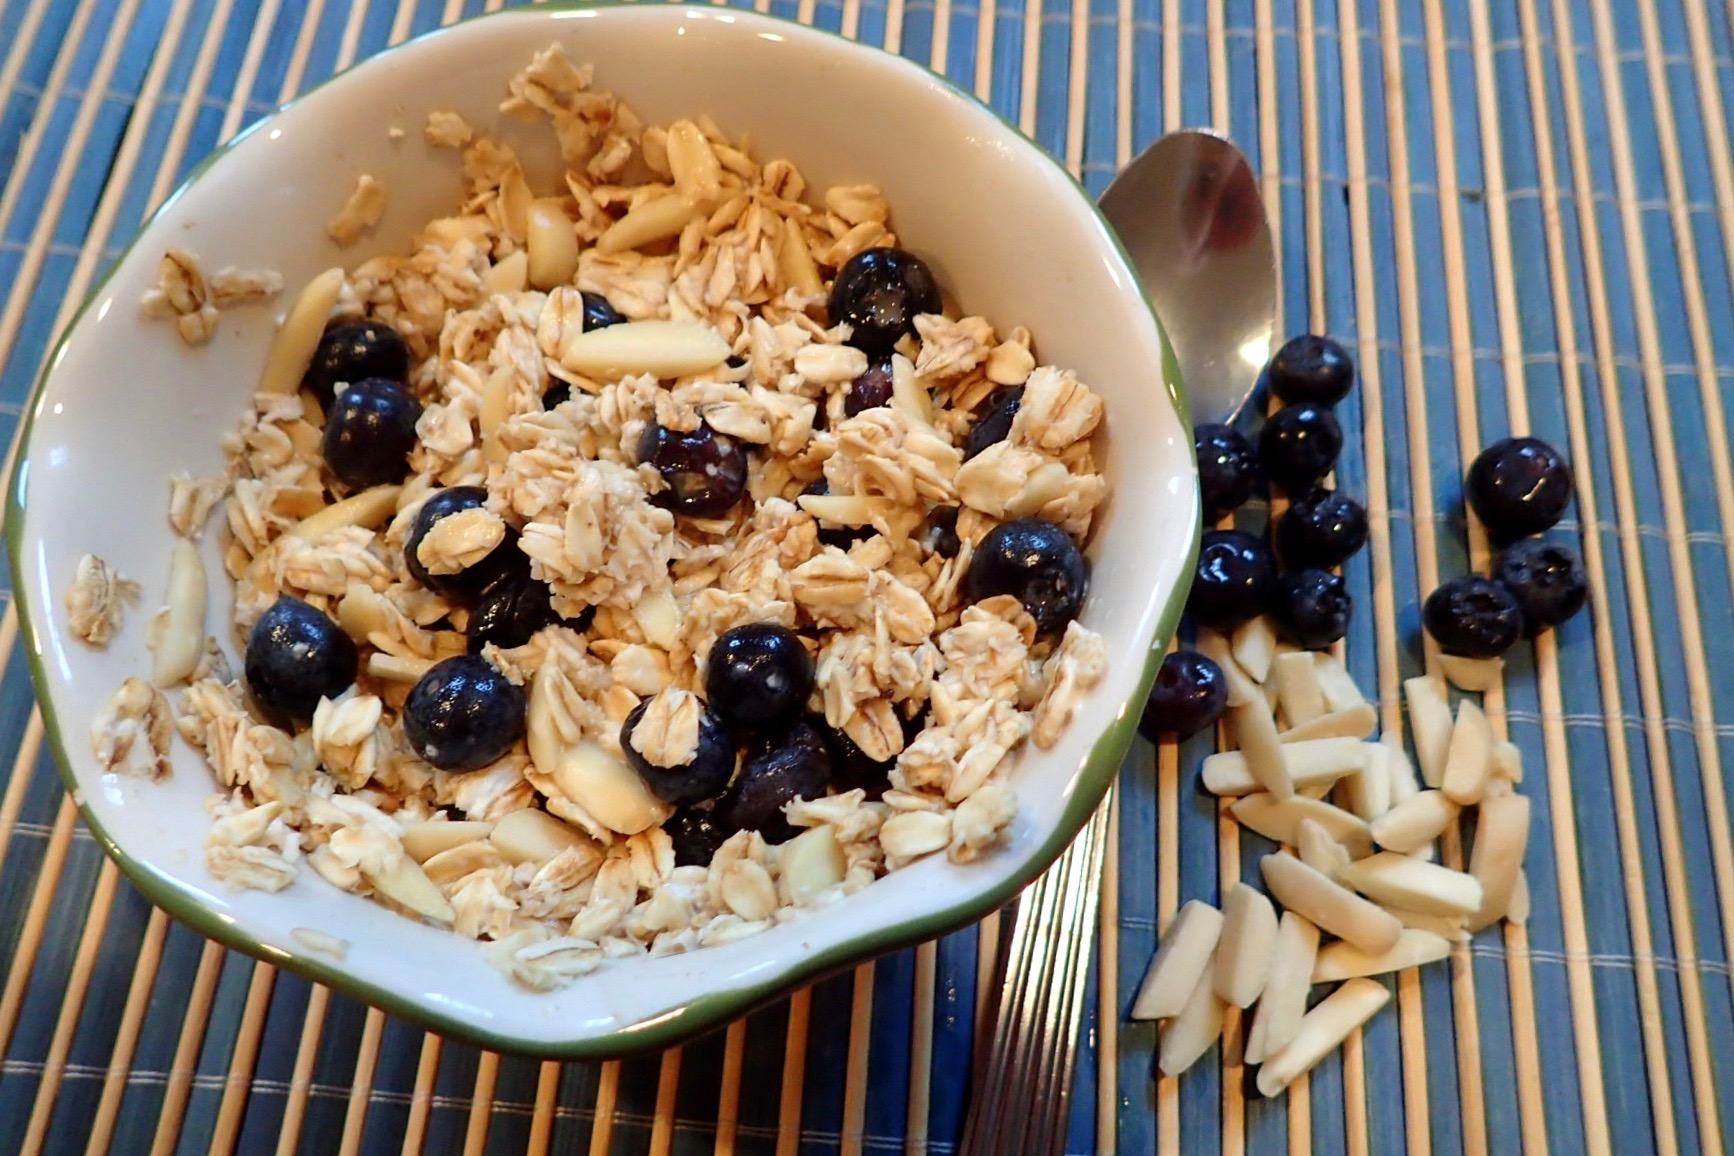 Blueberry Almond Oatmeal